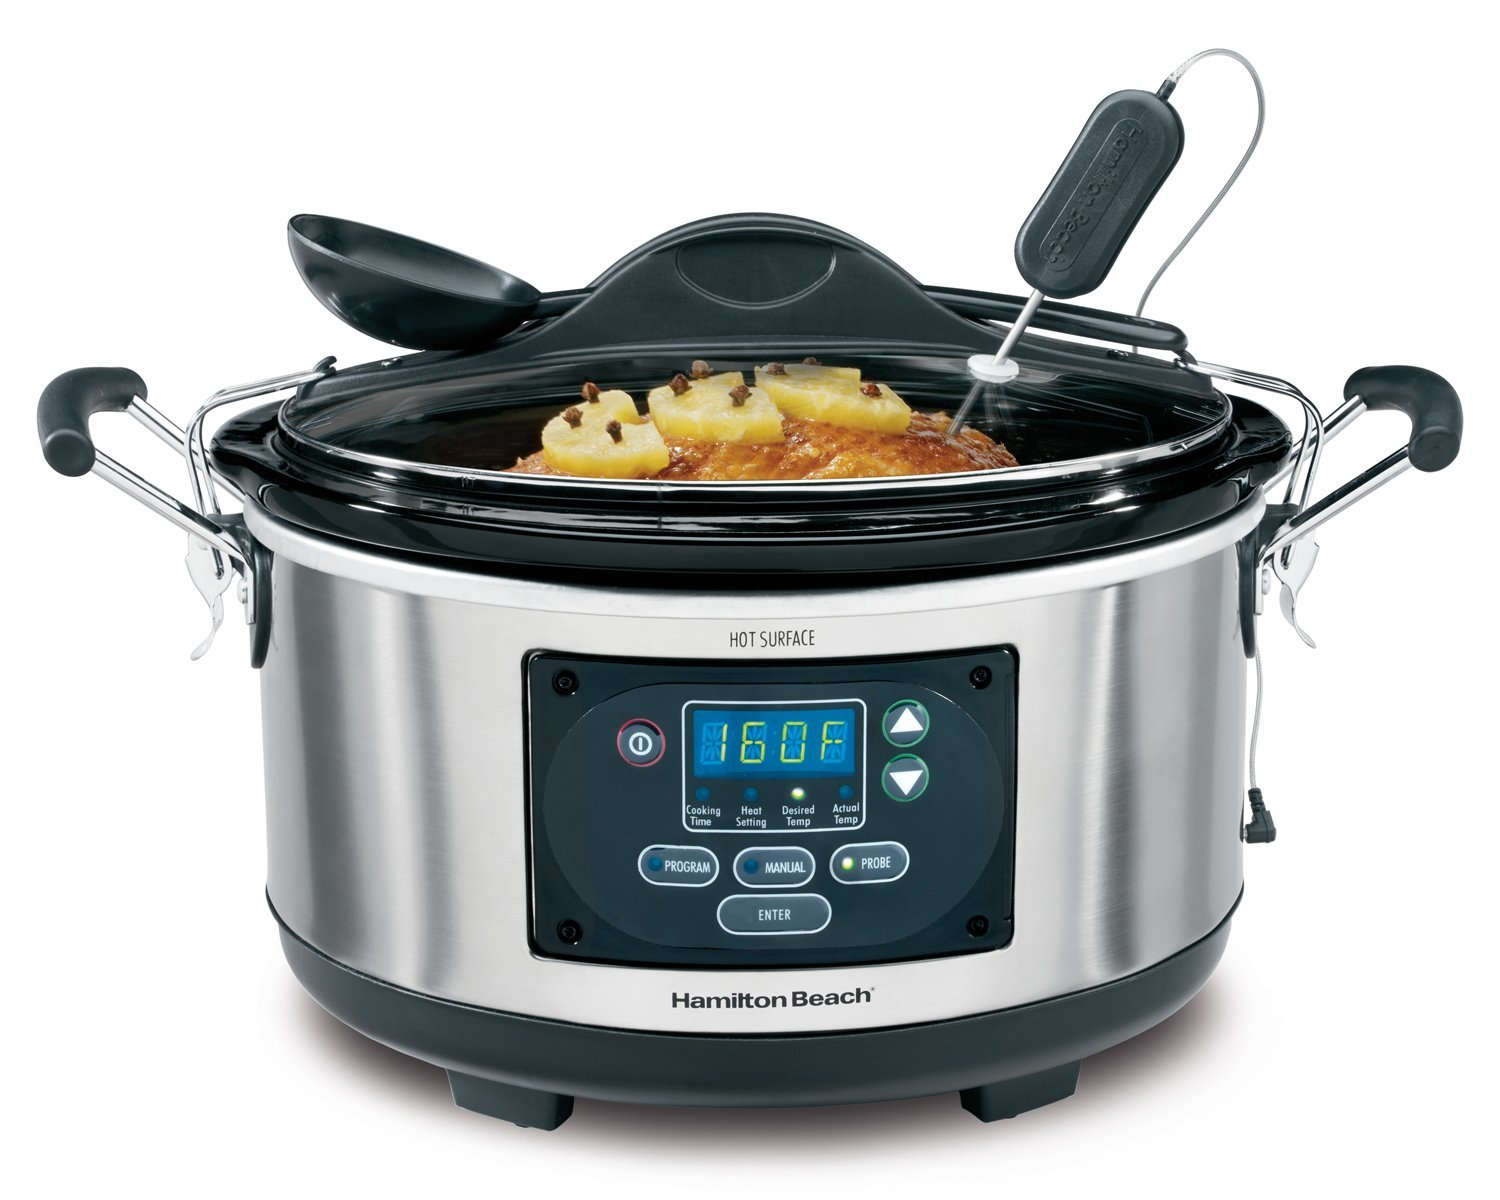 Hamilton Beach Set 'n Forget Slow Cooker Sale $39.99  Free Shipping from Amazon